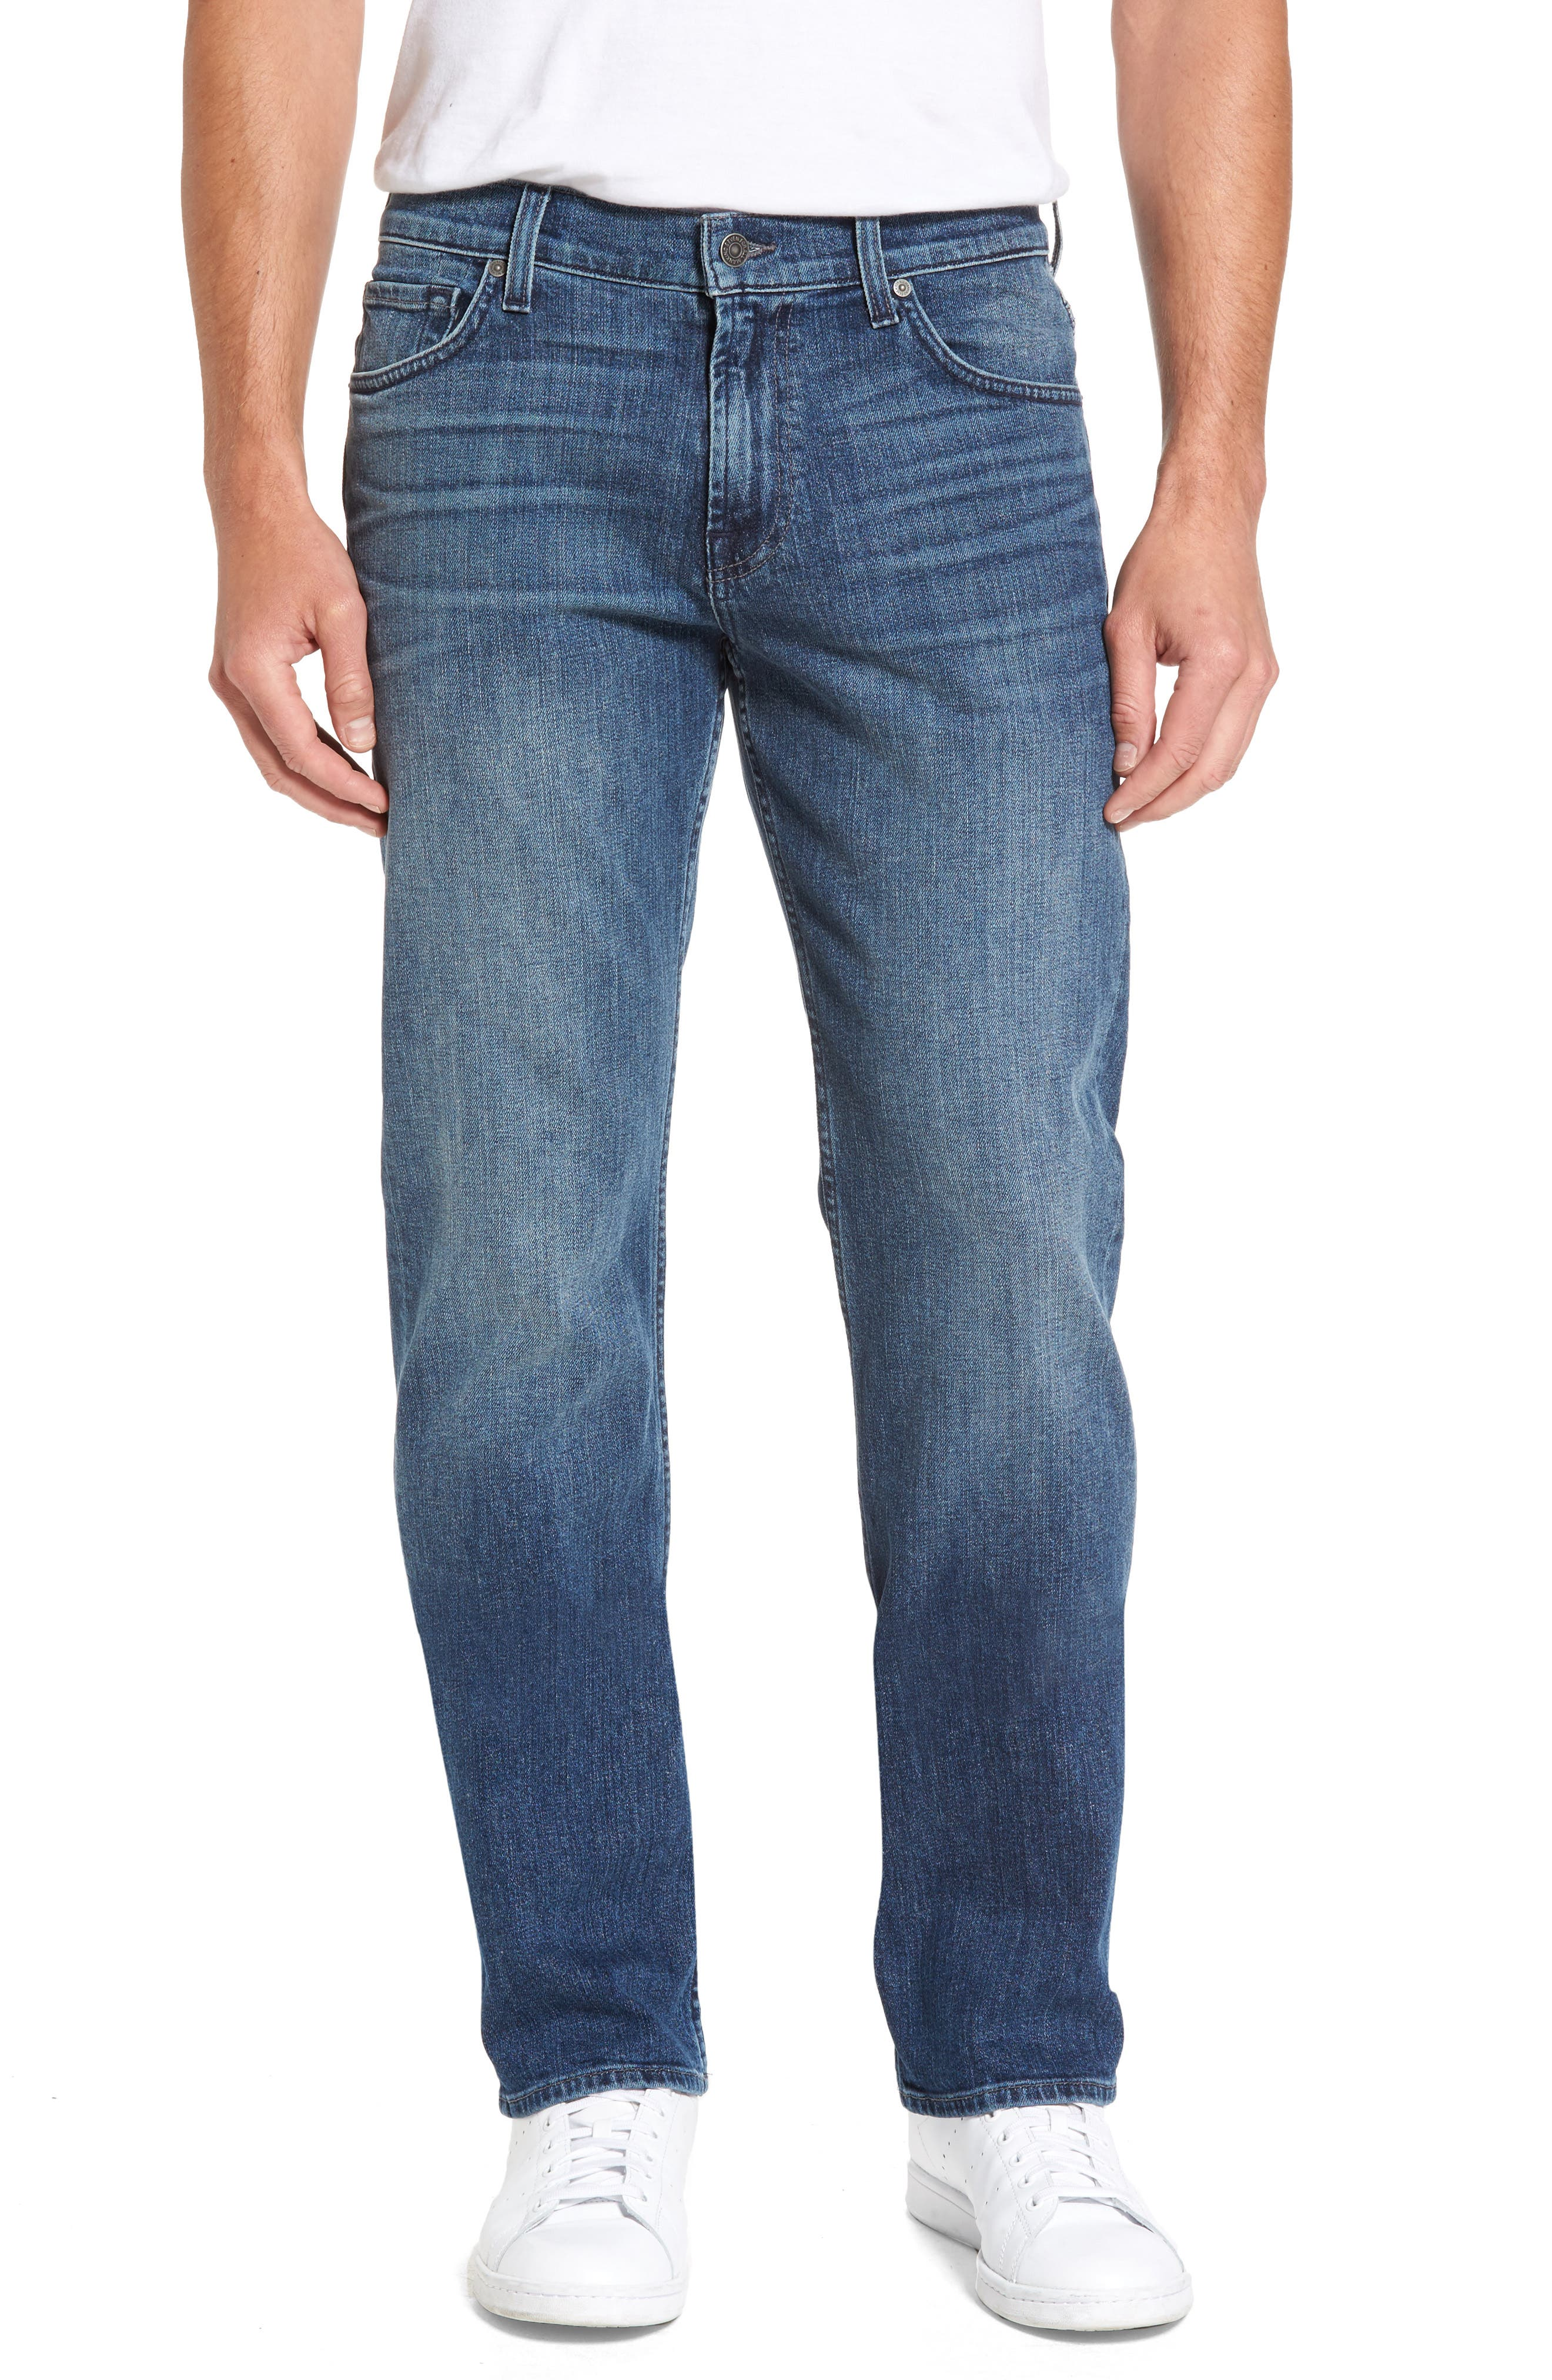 Alternate Image 1 Selected - 7 For All Mankind® Austyn Relaxed Fit Jeans (Townsend)